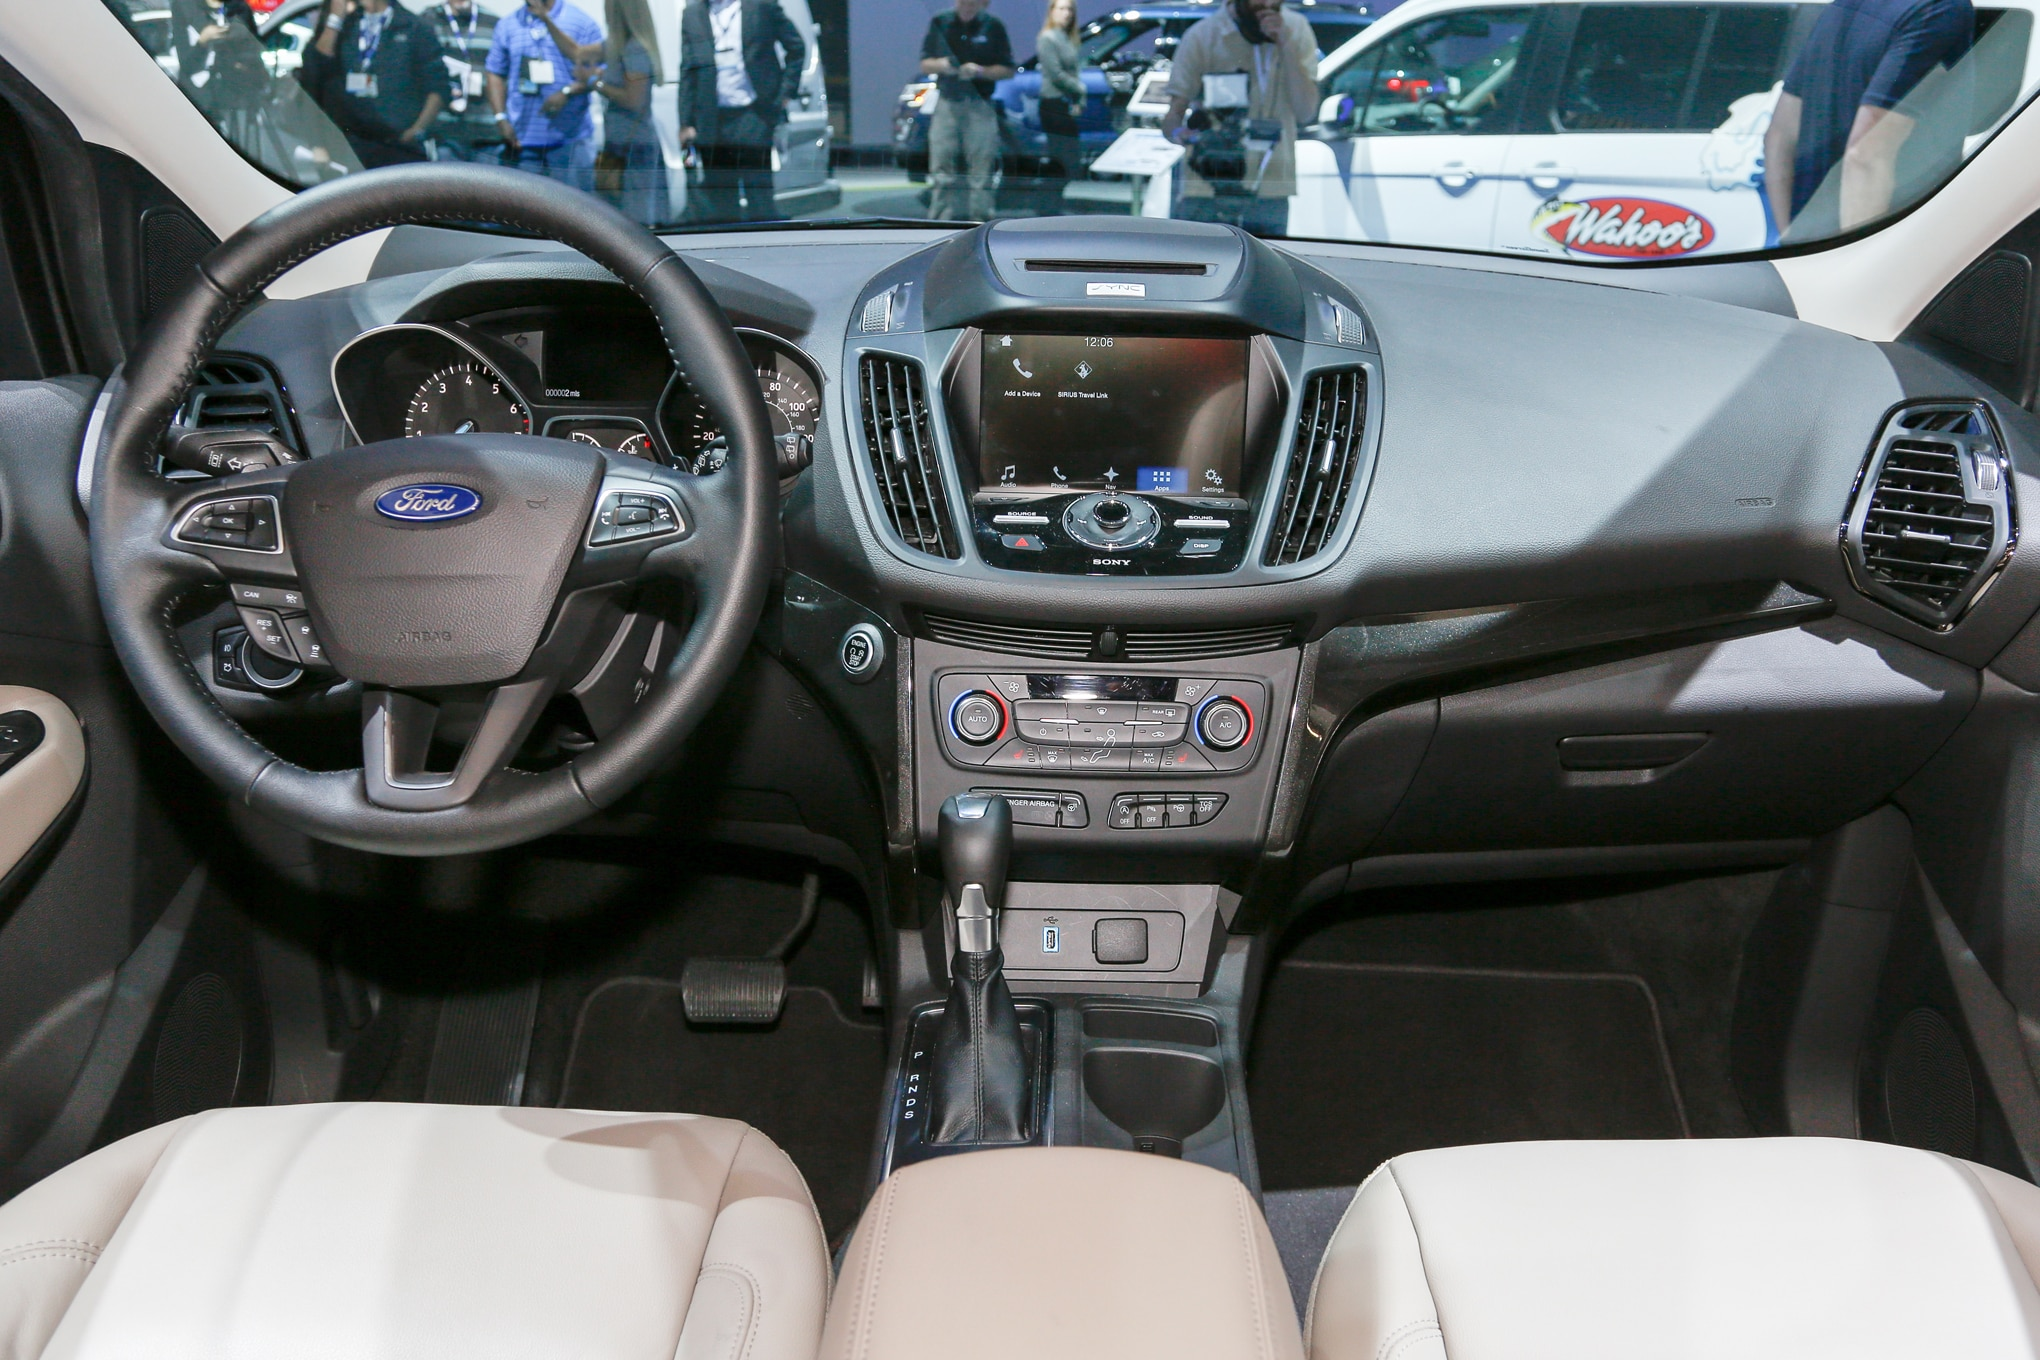 Ford Escape Interior Lights Wont Turn On Image Of Ruostejarvi Org